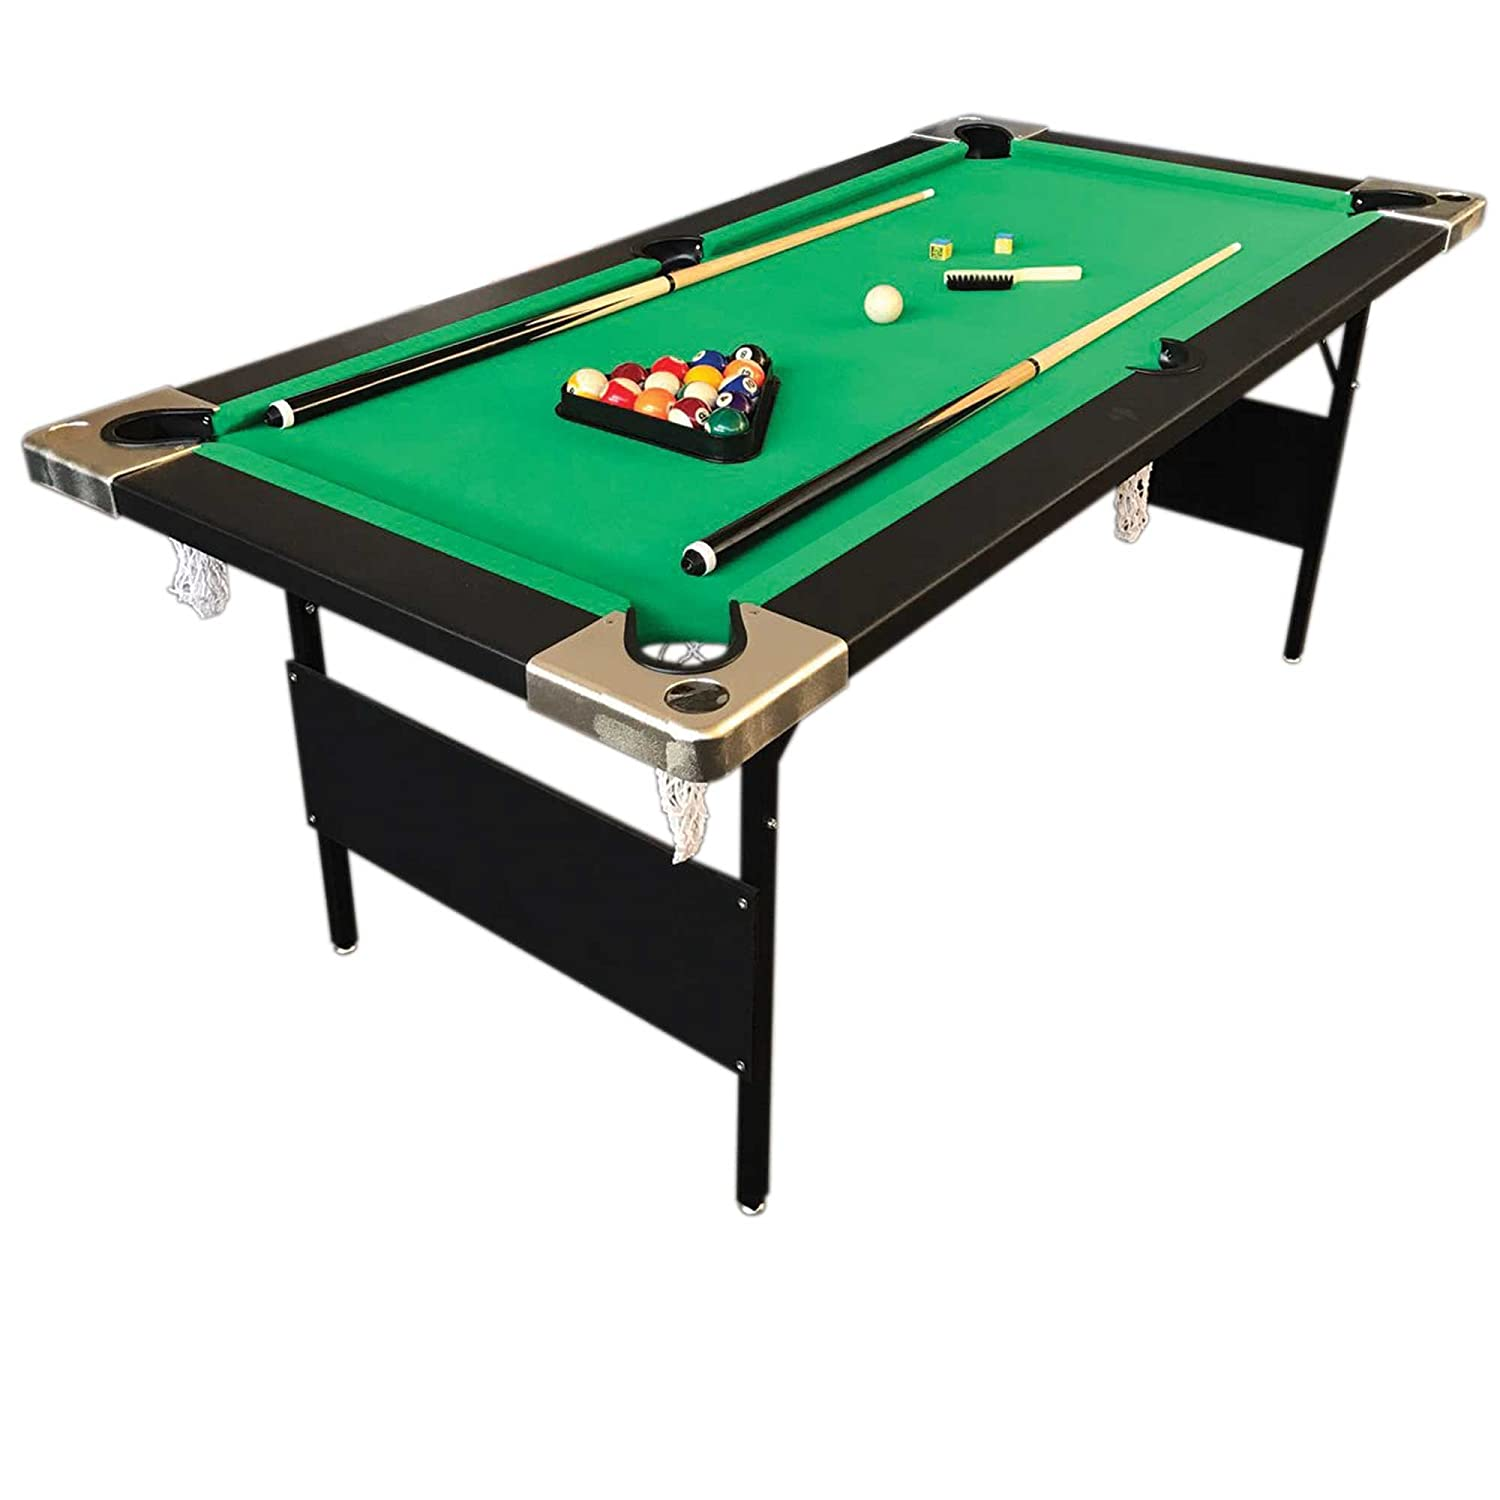 walmart com game ft family boardwalk arcade resistant playfield table tables with sale track for cheap ball scratch lighting led ip hathaway pool rooms